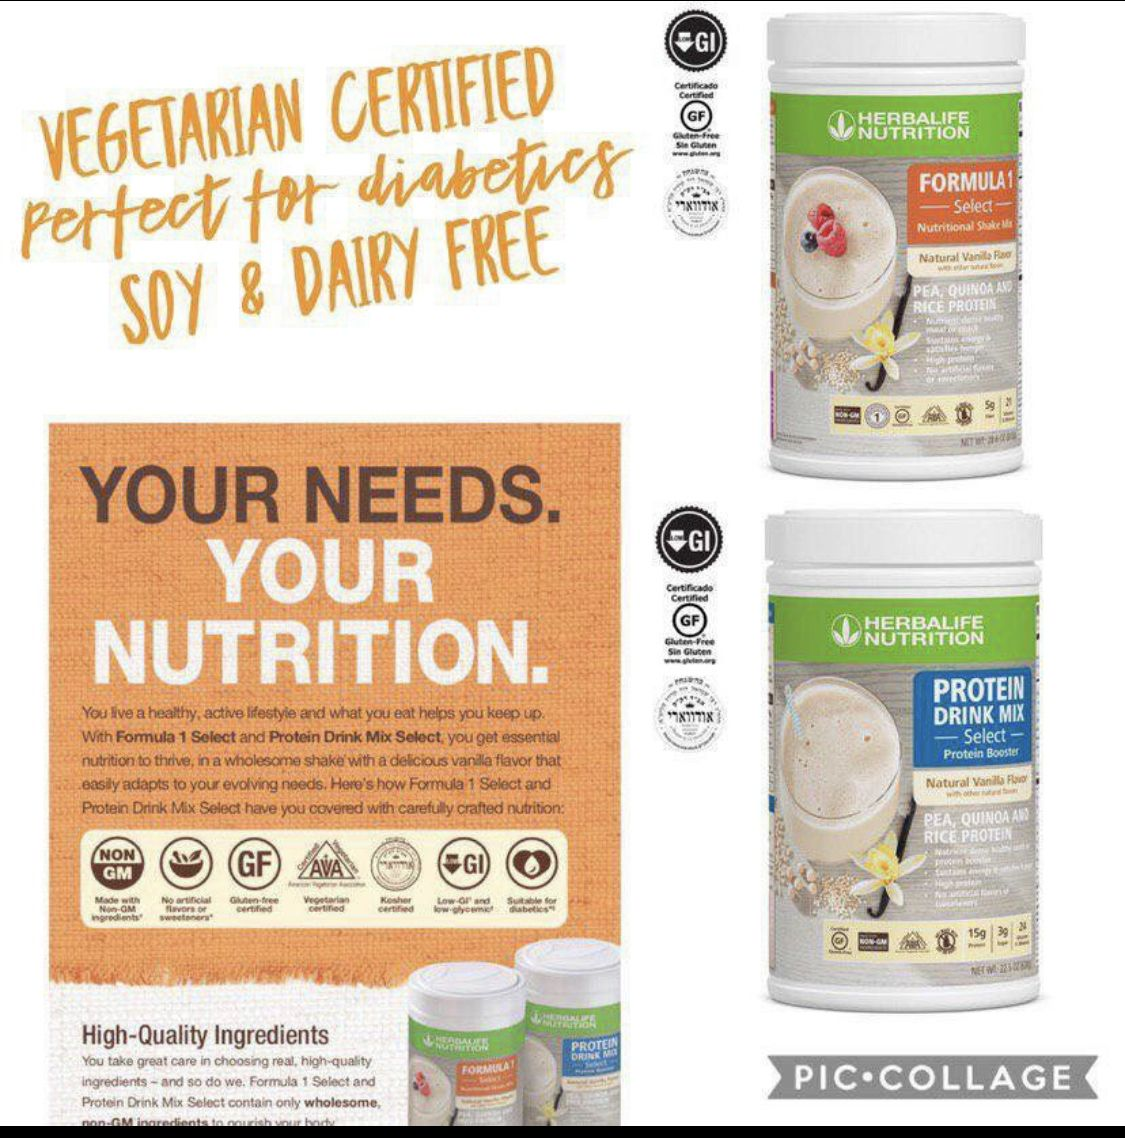 New Products Soy Vegetarian And Gluten Free F1 Formulas Herbalife Nutrition Nutrition Blog Protein Drinks